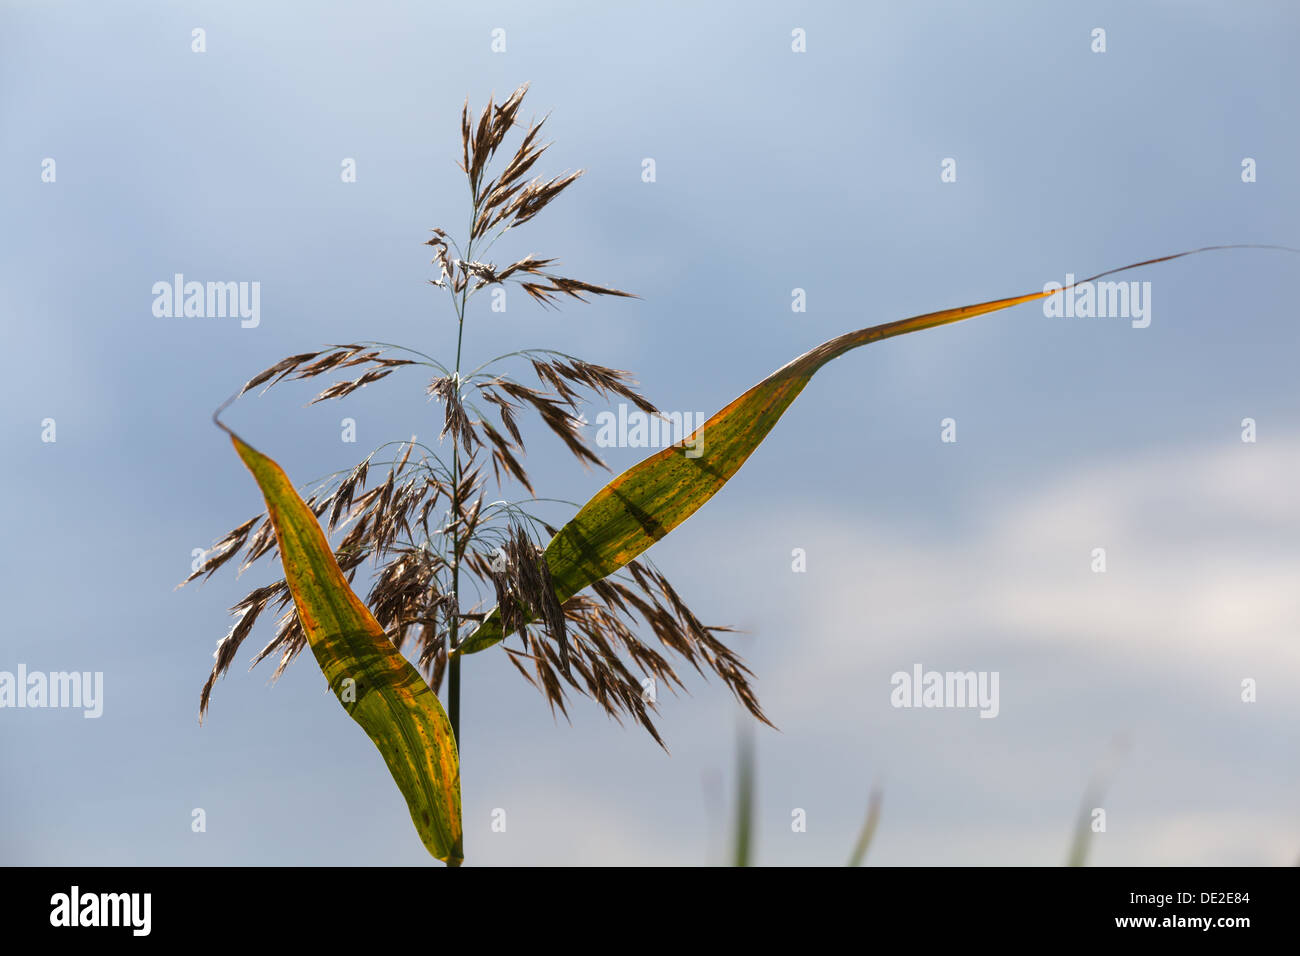 Reed on sky background - Stock Image